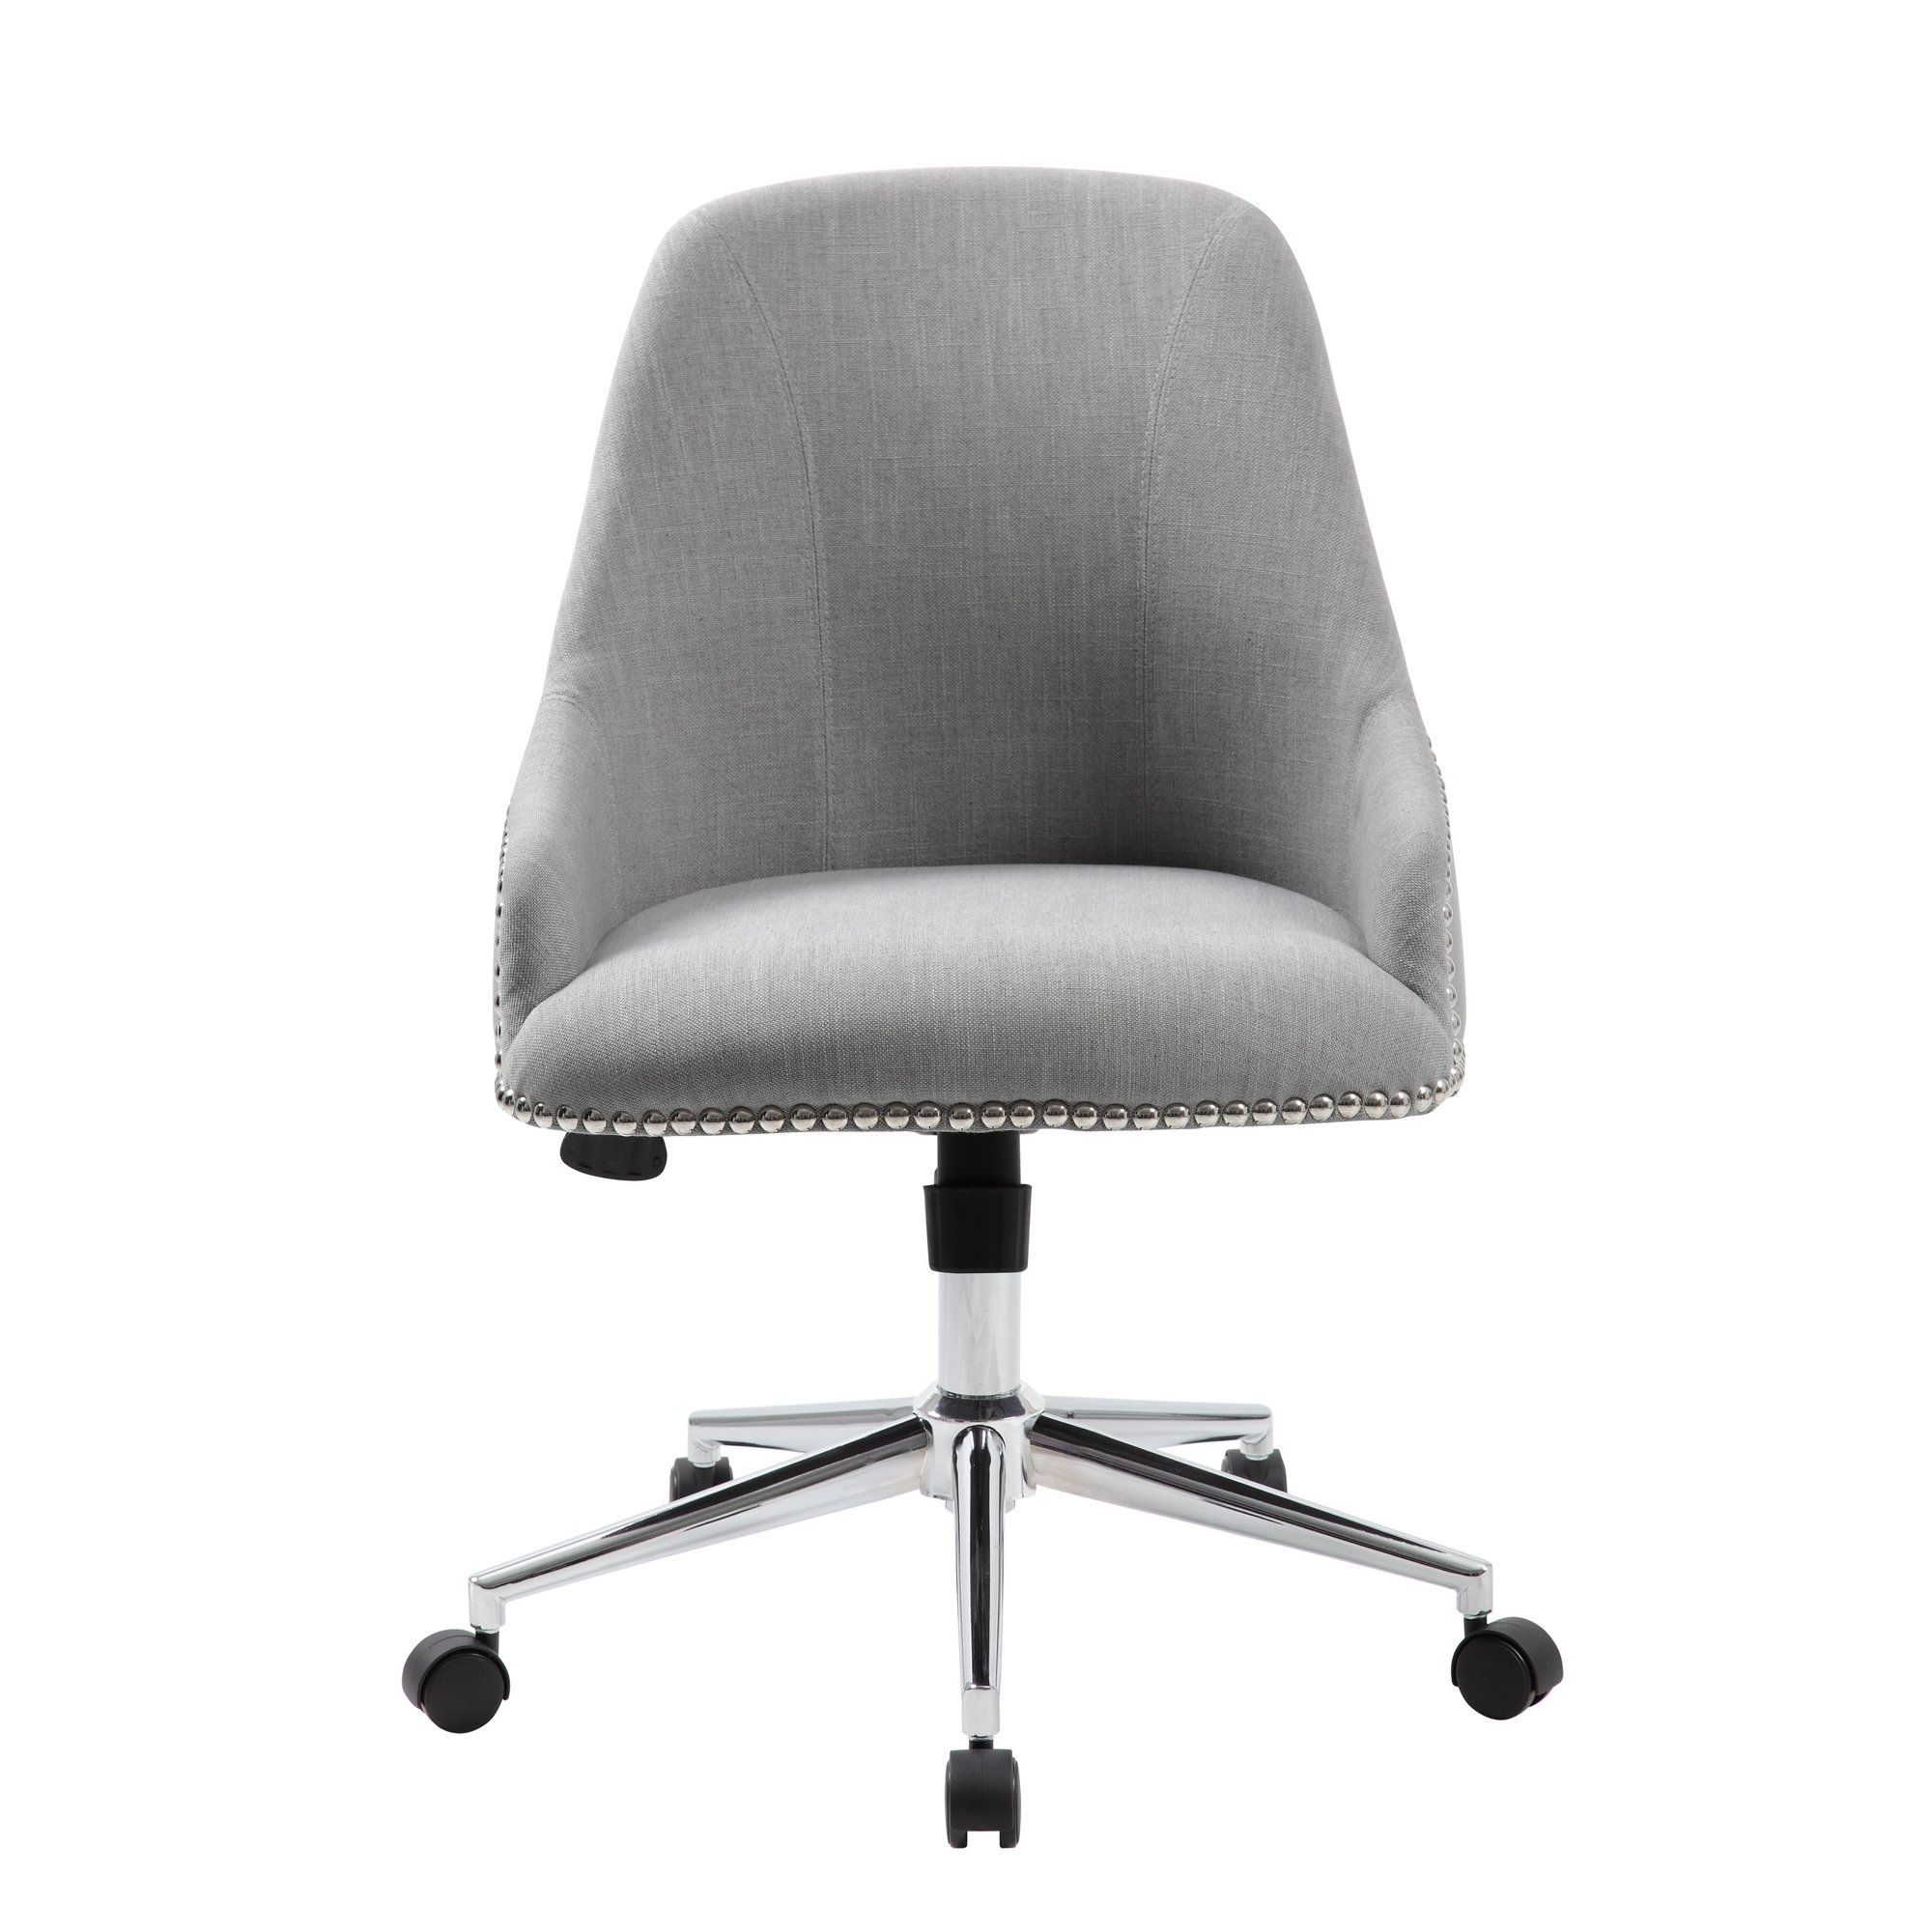 office chair upholstery. Upholstered Desk Chair With Wheels Office Upholstery D